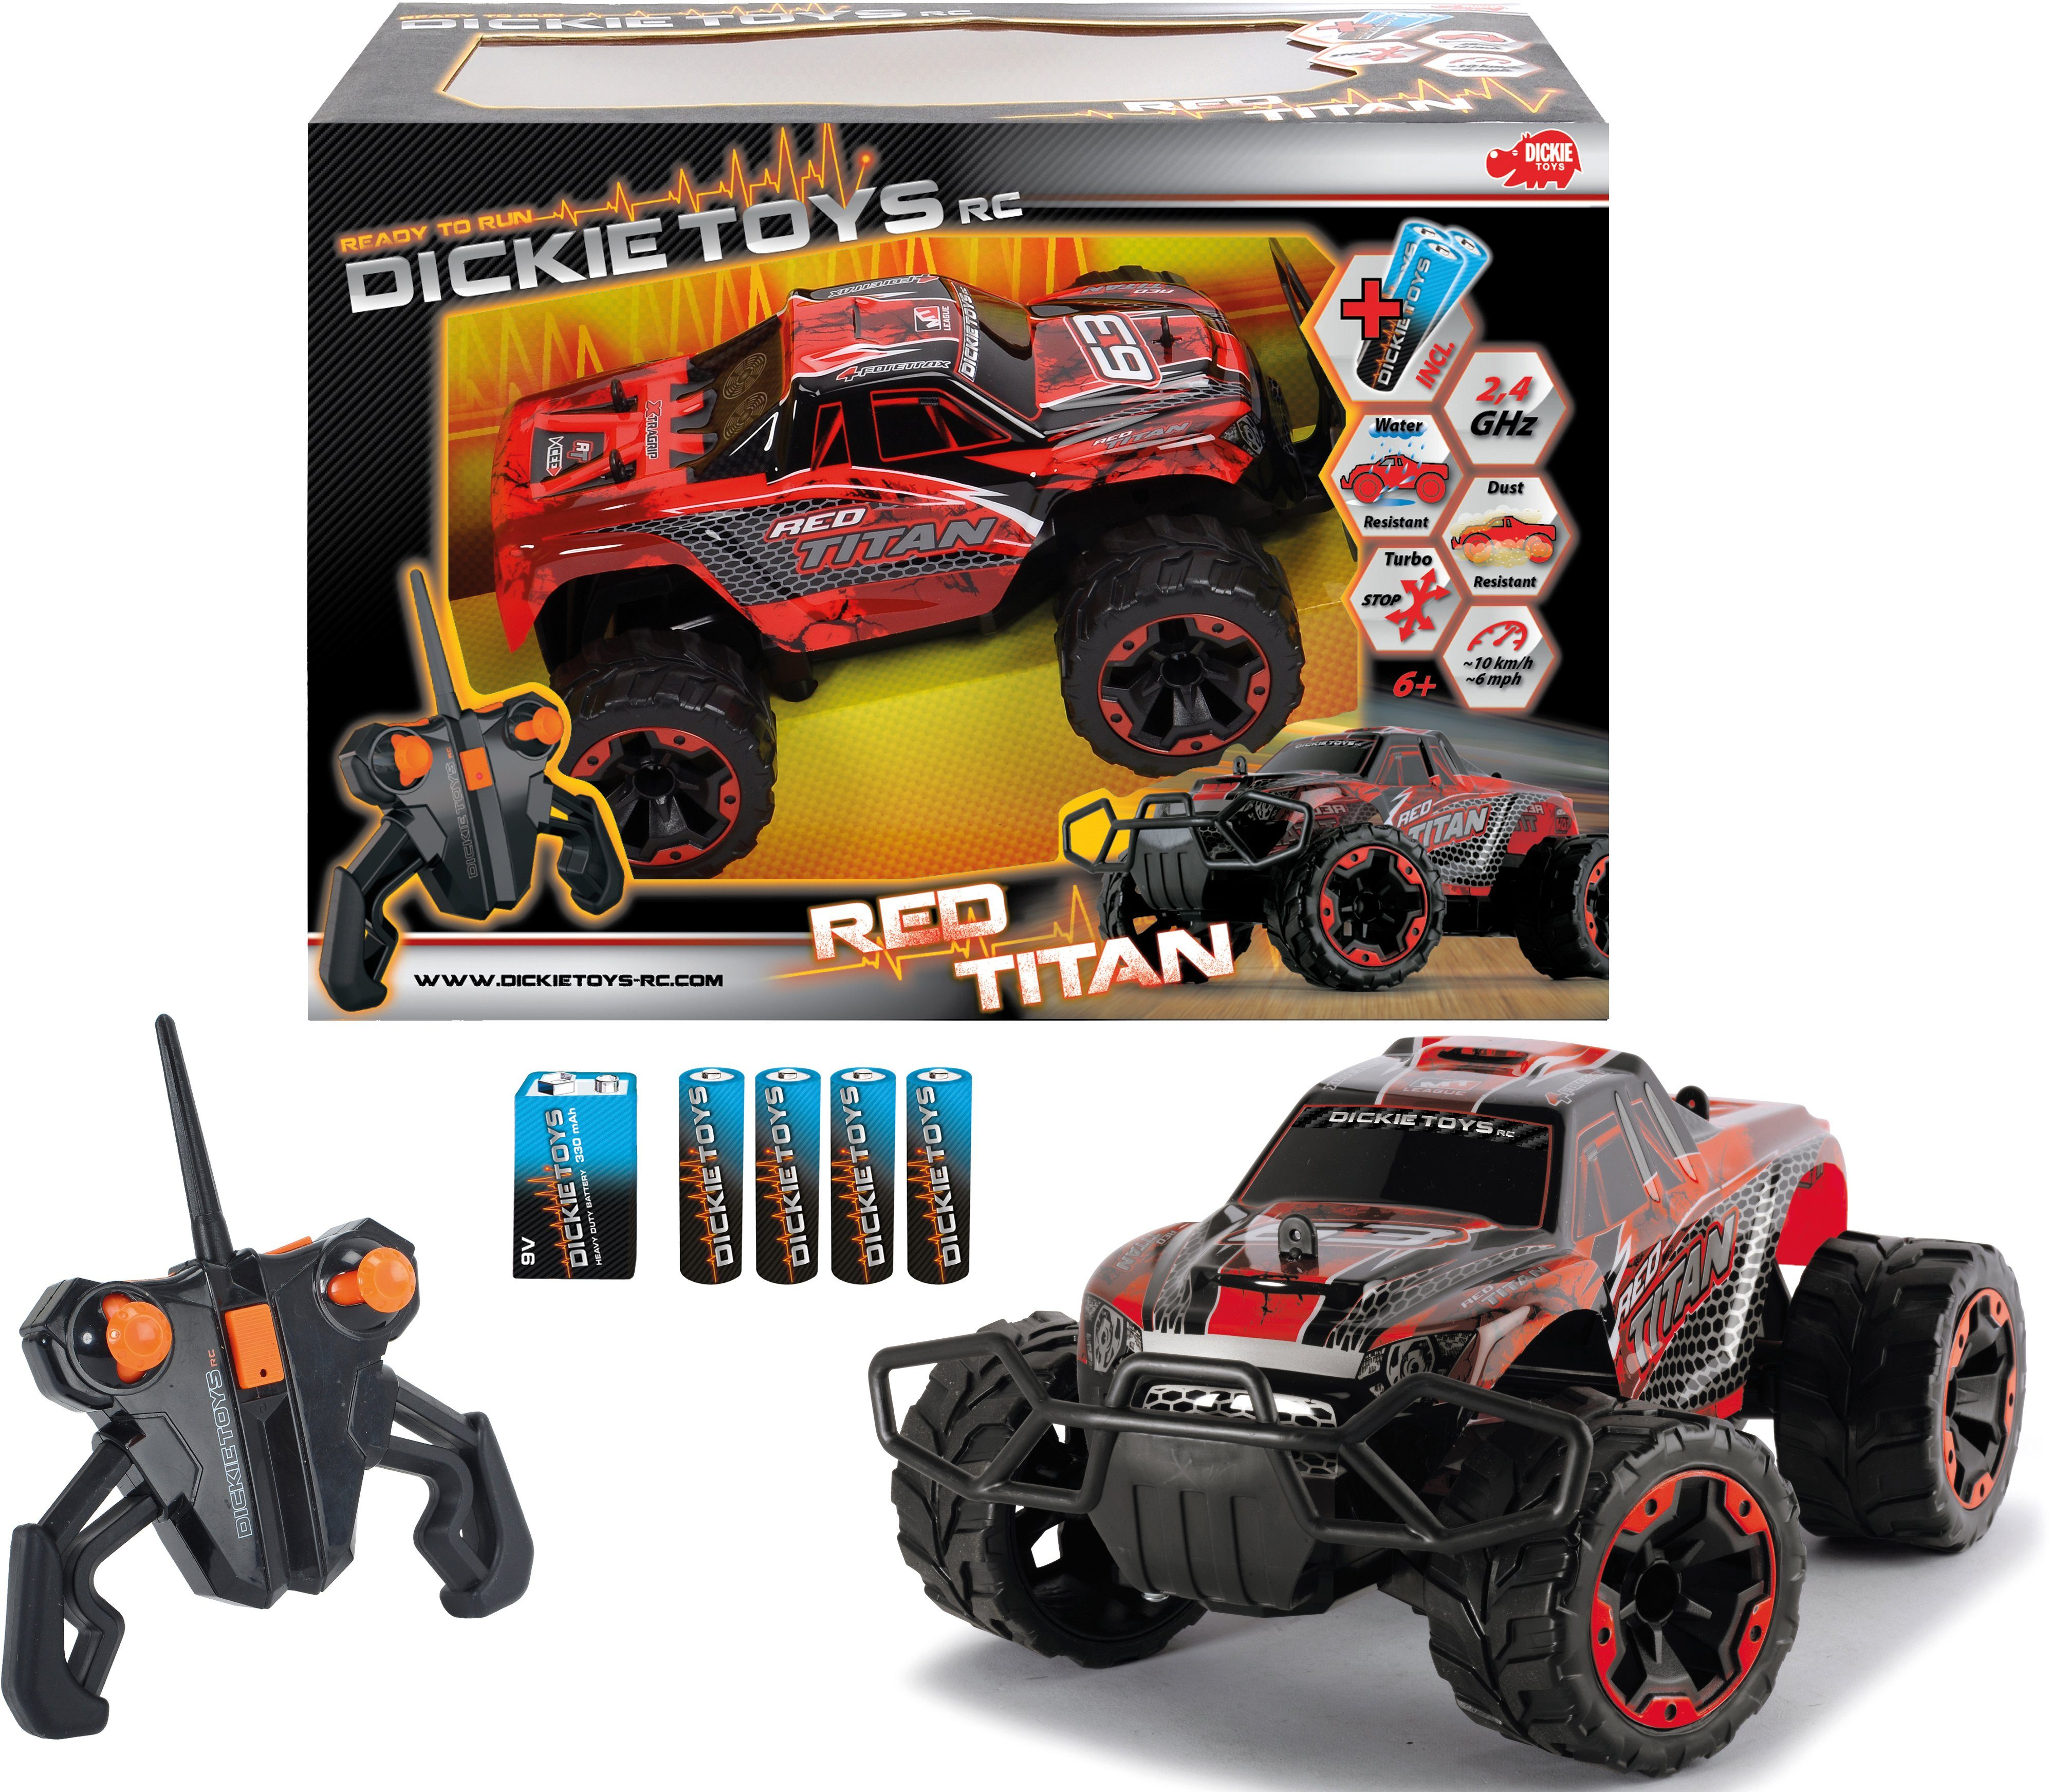 Dickie Toys RC Komplett Set, »Red Titan 2,4 GHz 1:16«